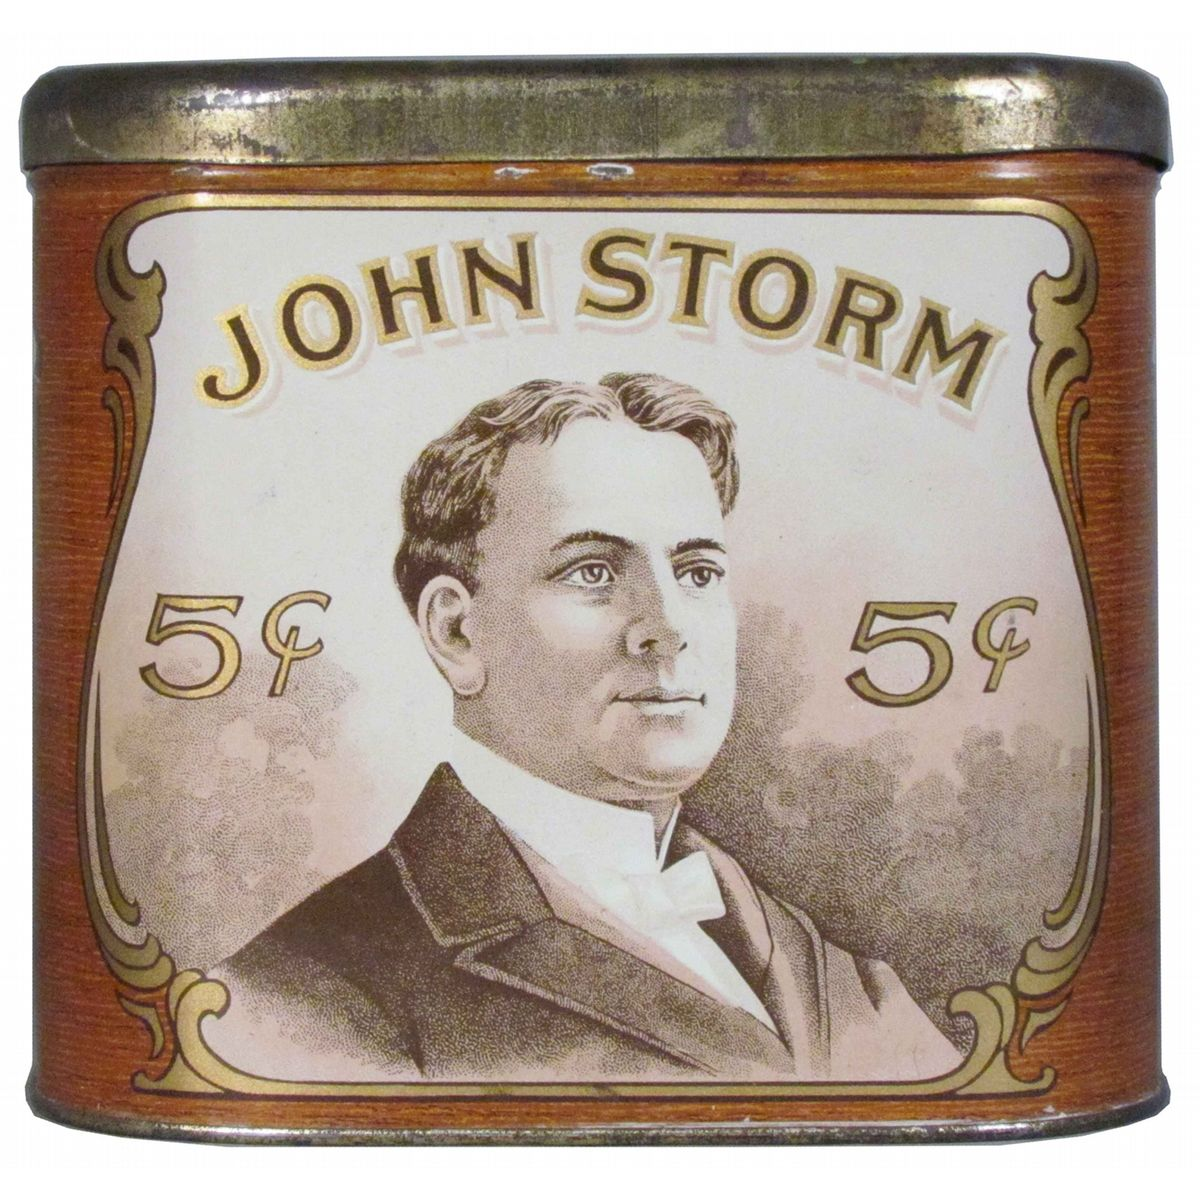 John Storm 5 Cent Cigar Tin For 50 Cigars